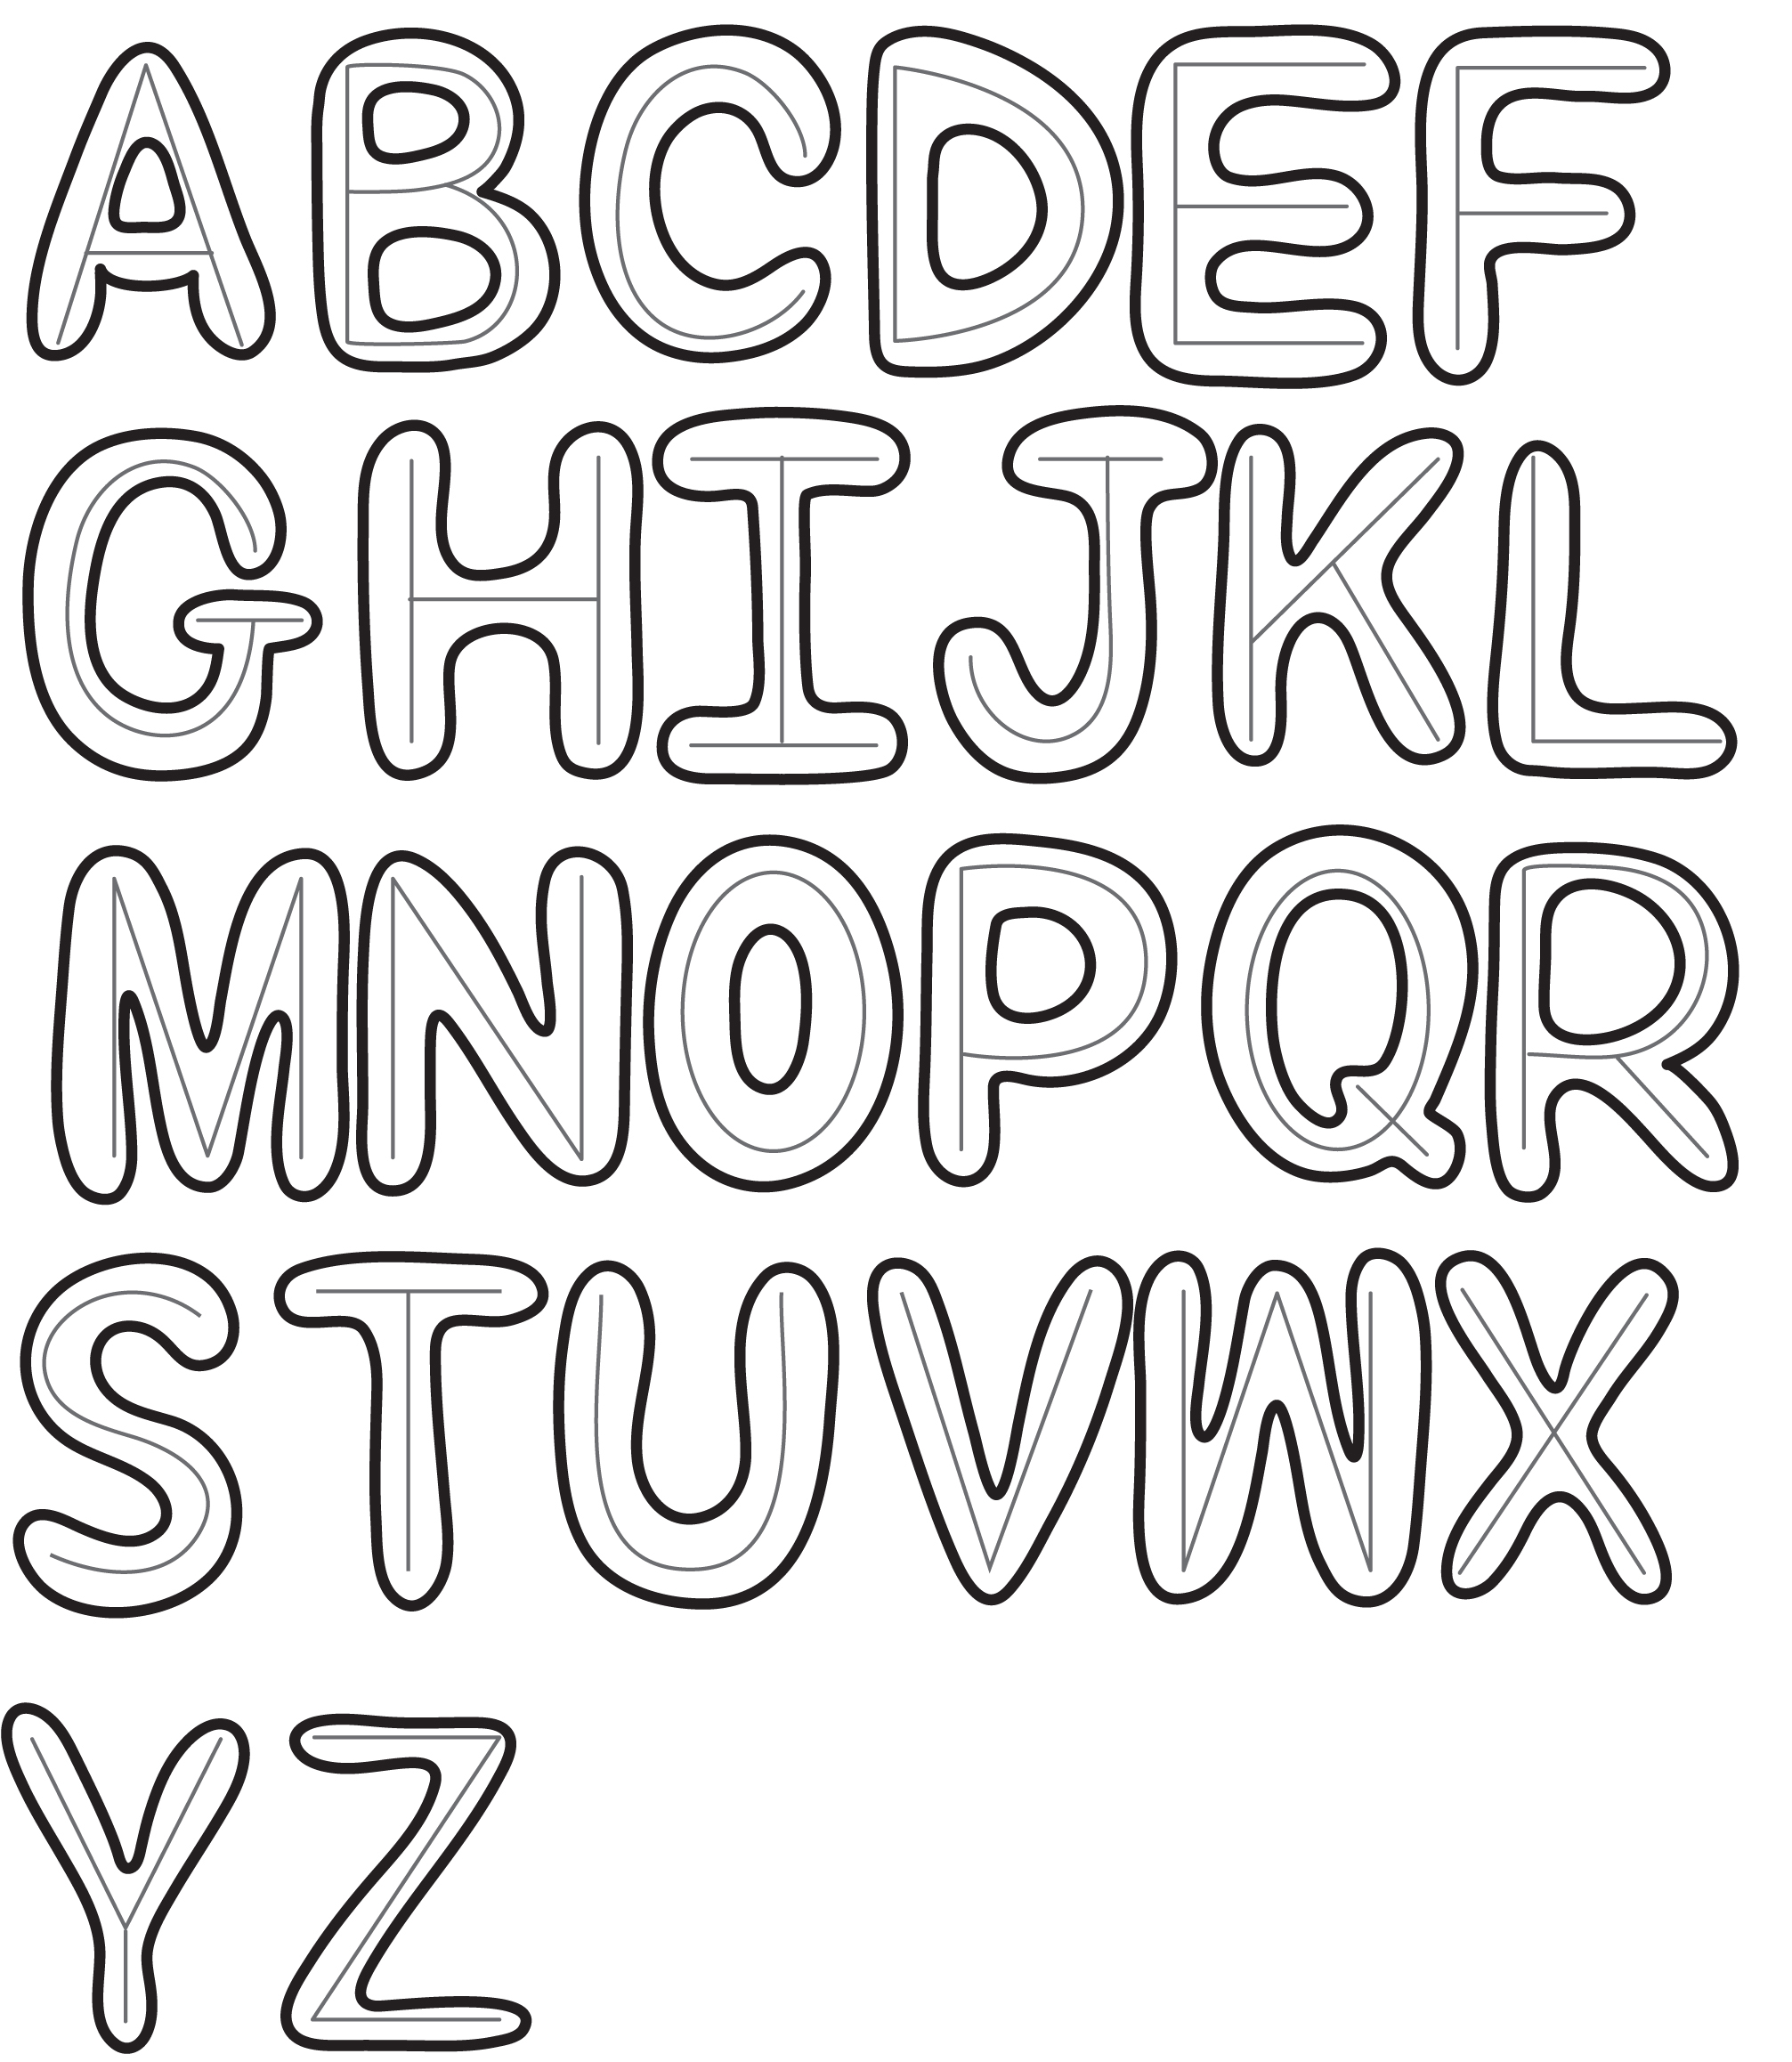 2013x2316 Bubble Capital Letters Drawings Of Bubble Letters How To Draw